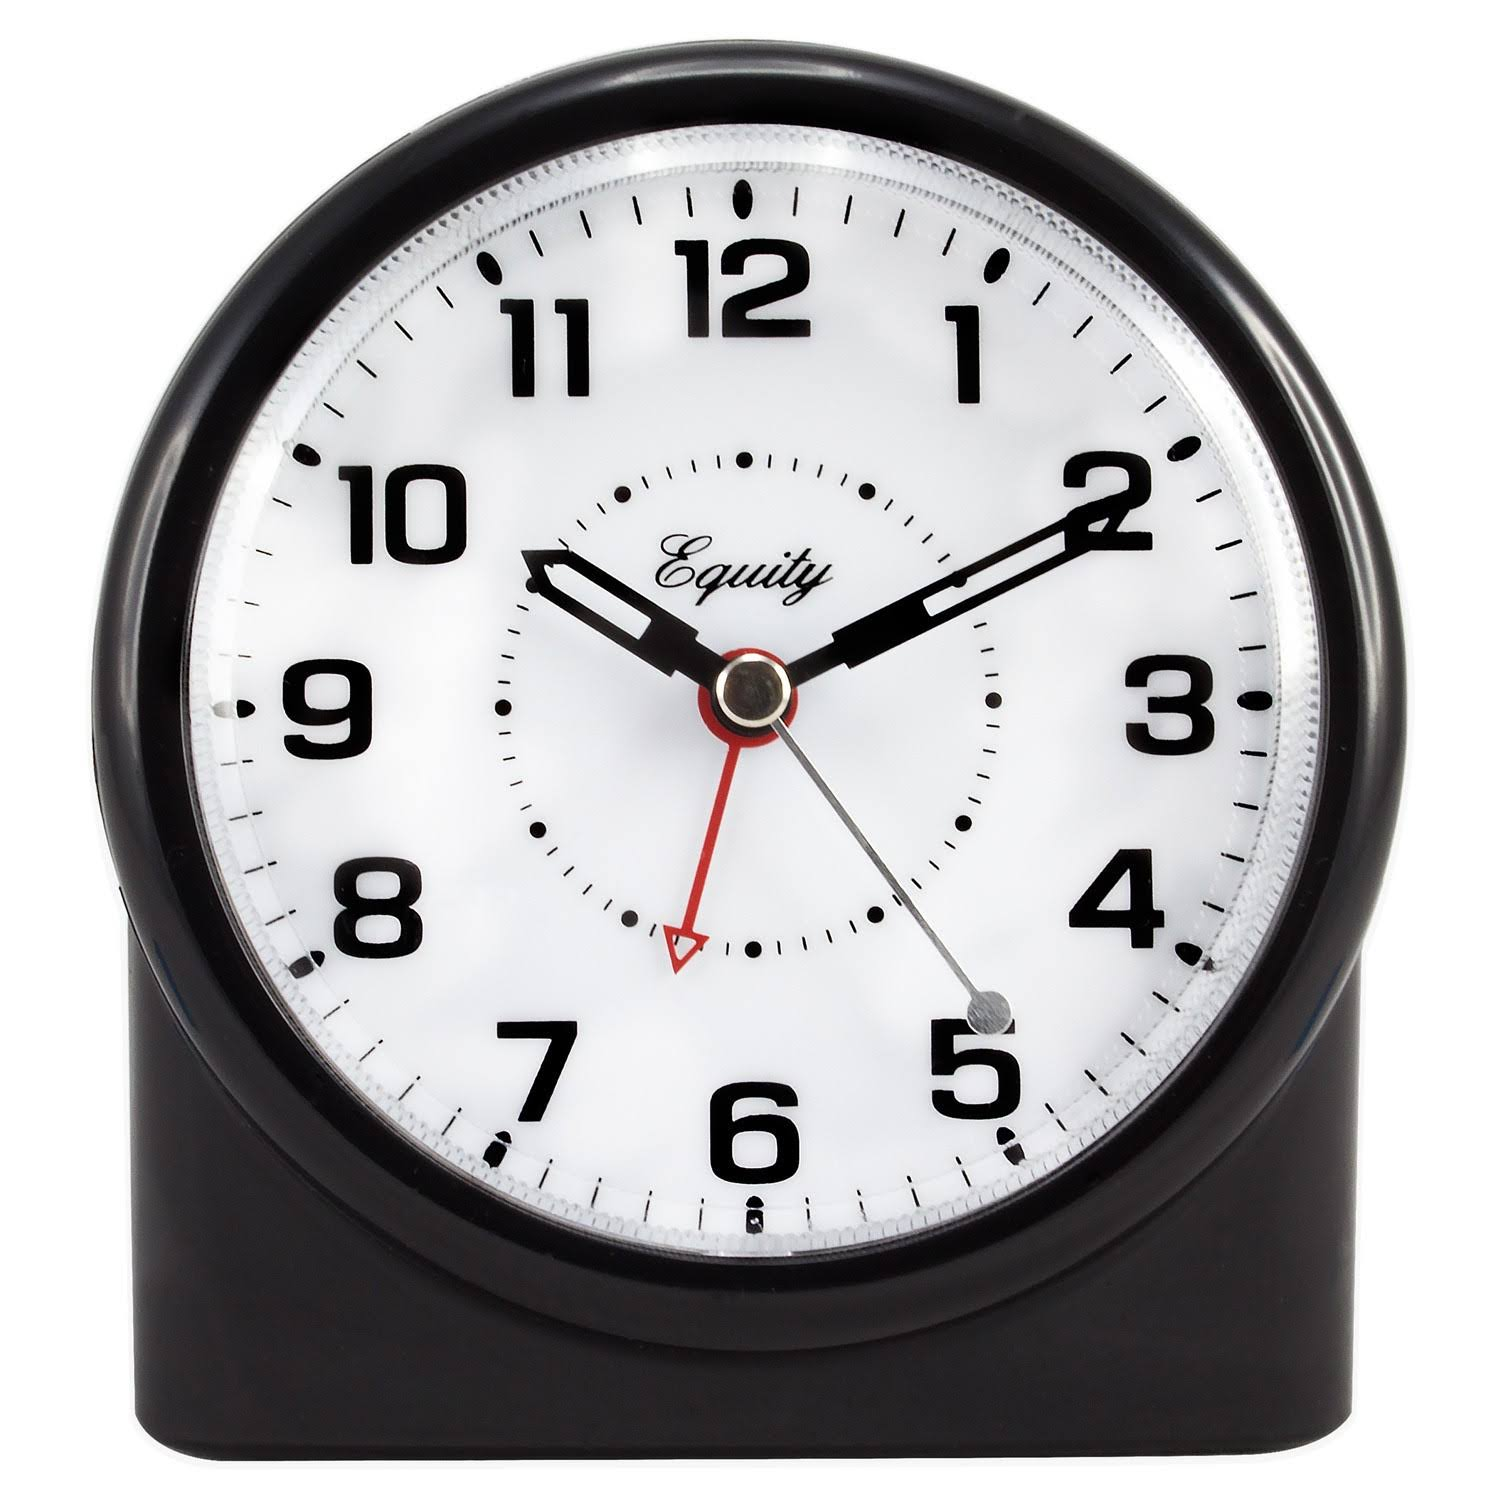 "Equity by La Crosse Analog Alarm Table Clock - Large, 4.72"", Black"